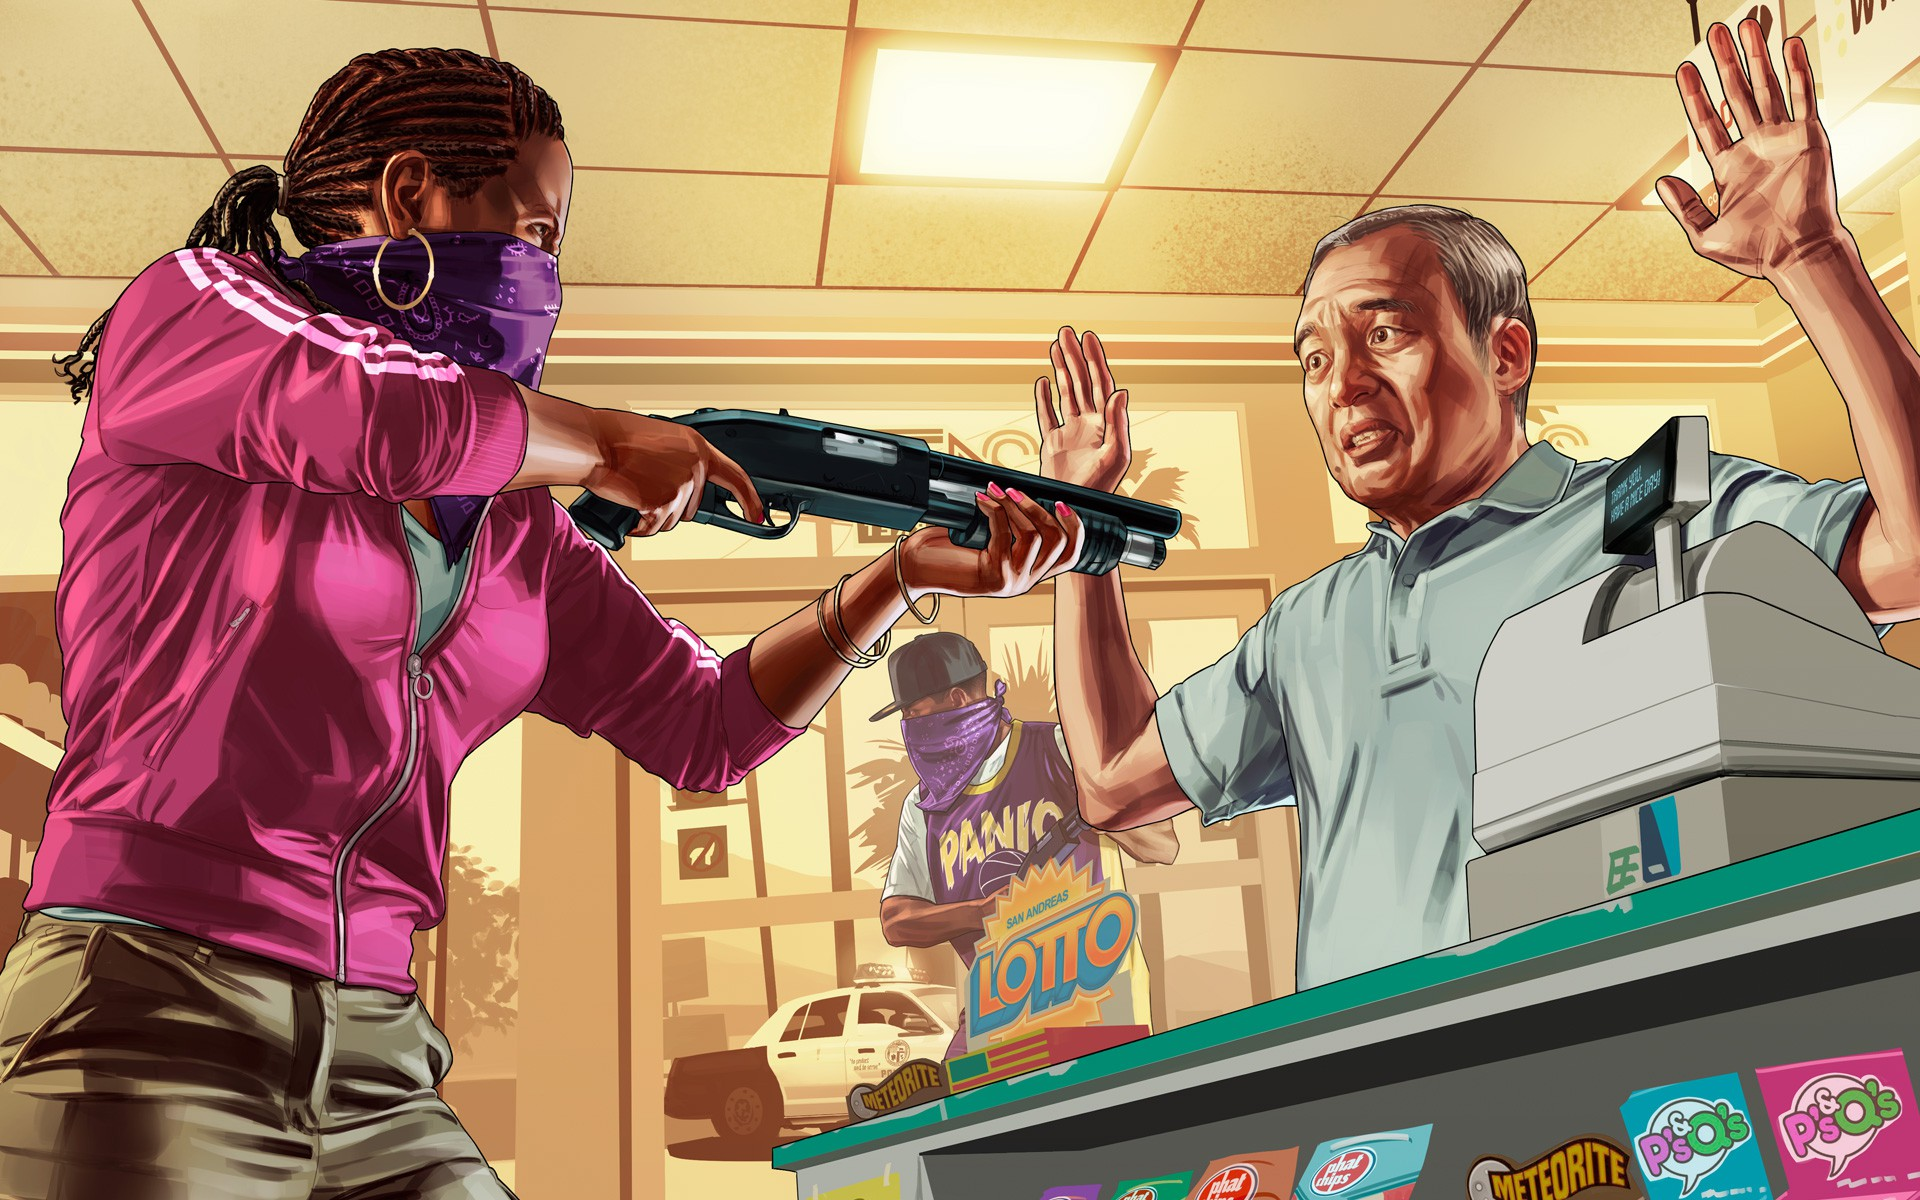 gta5-artwork-44-hd.jpg